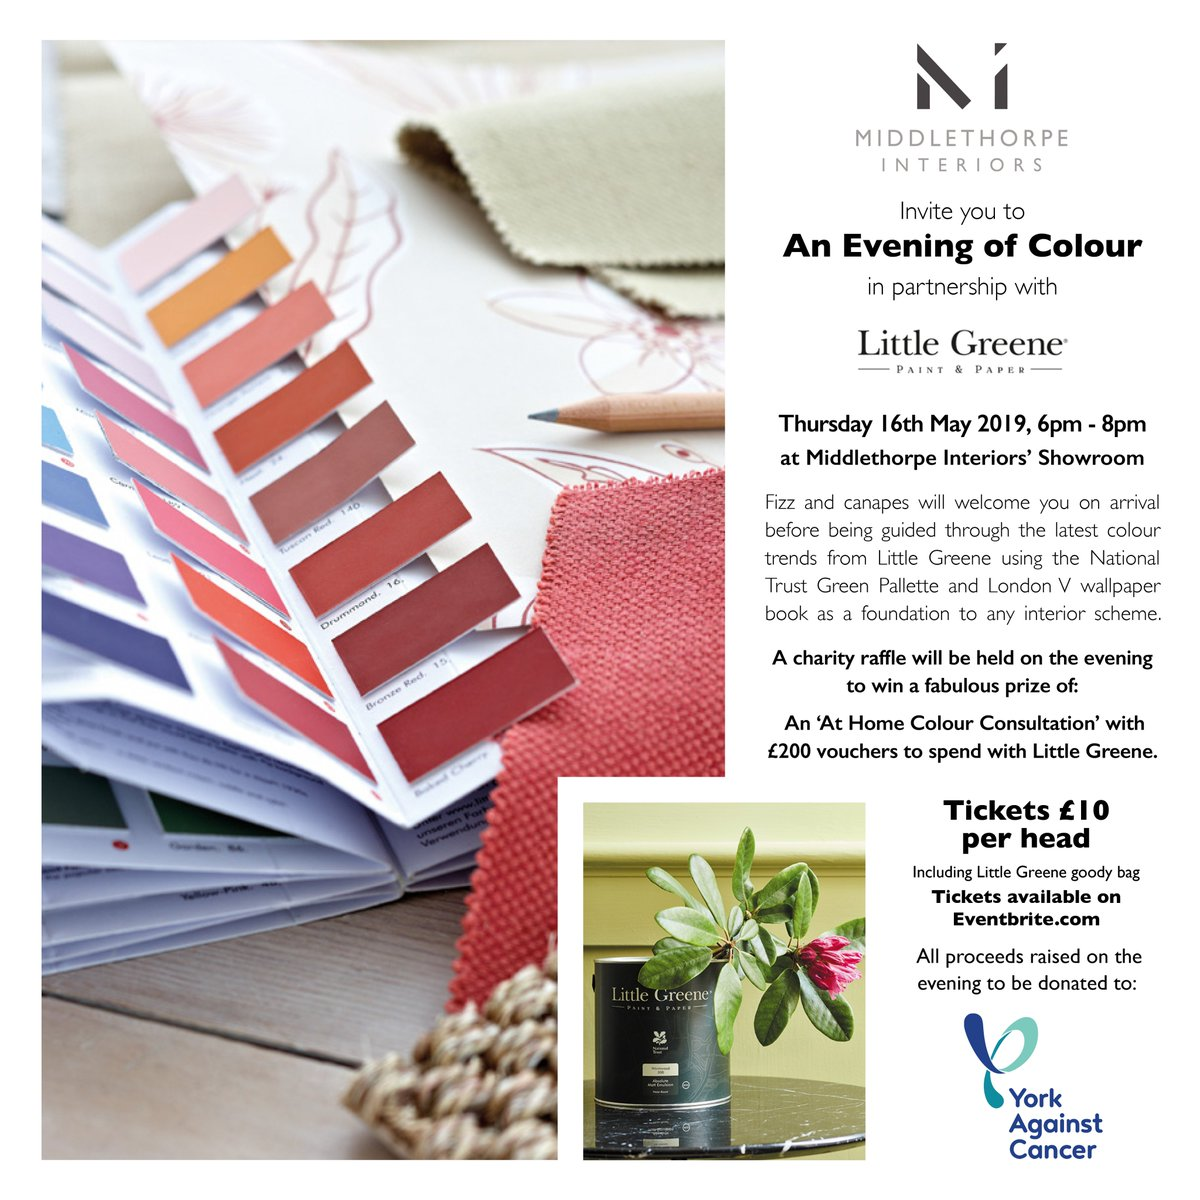 ... @LittleGreene . All proceeds from this event will go to @YorkAgainstCanc Tickets available here: (link: https://mi-aneveningofcolour.eventbrite.co.uk/ ...